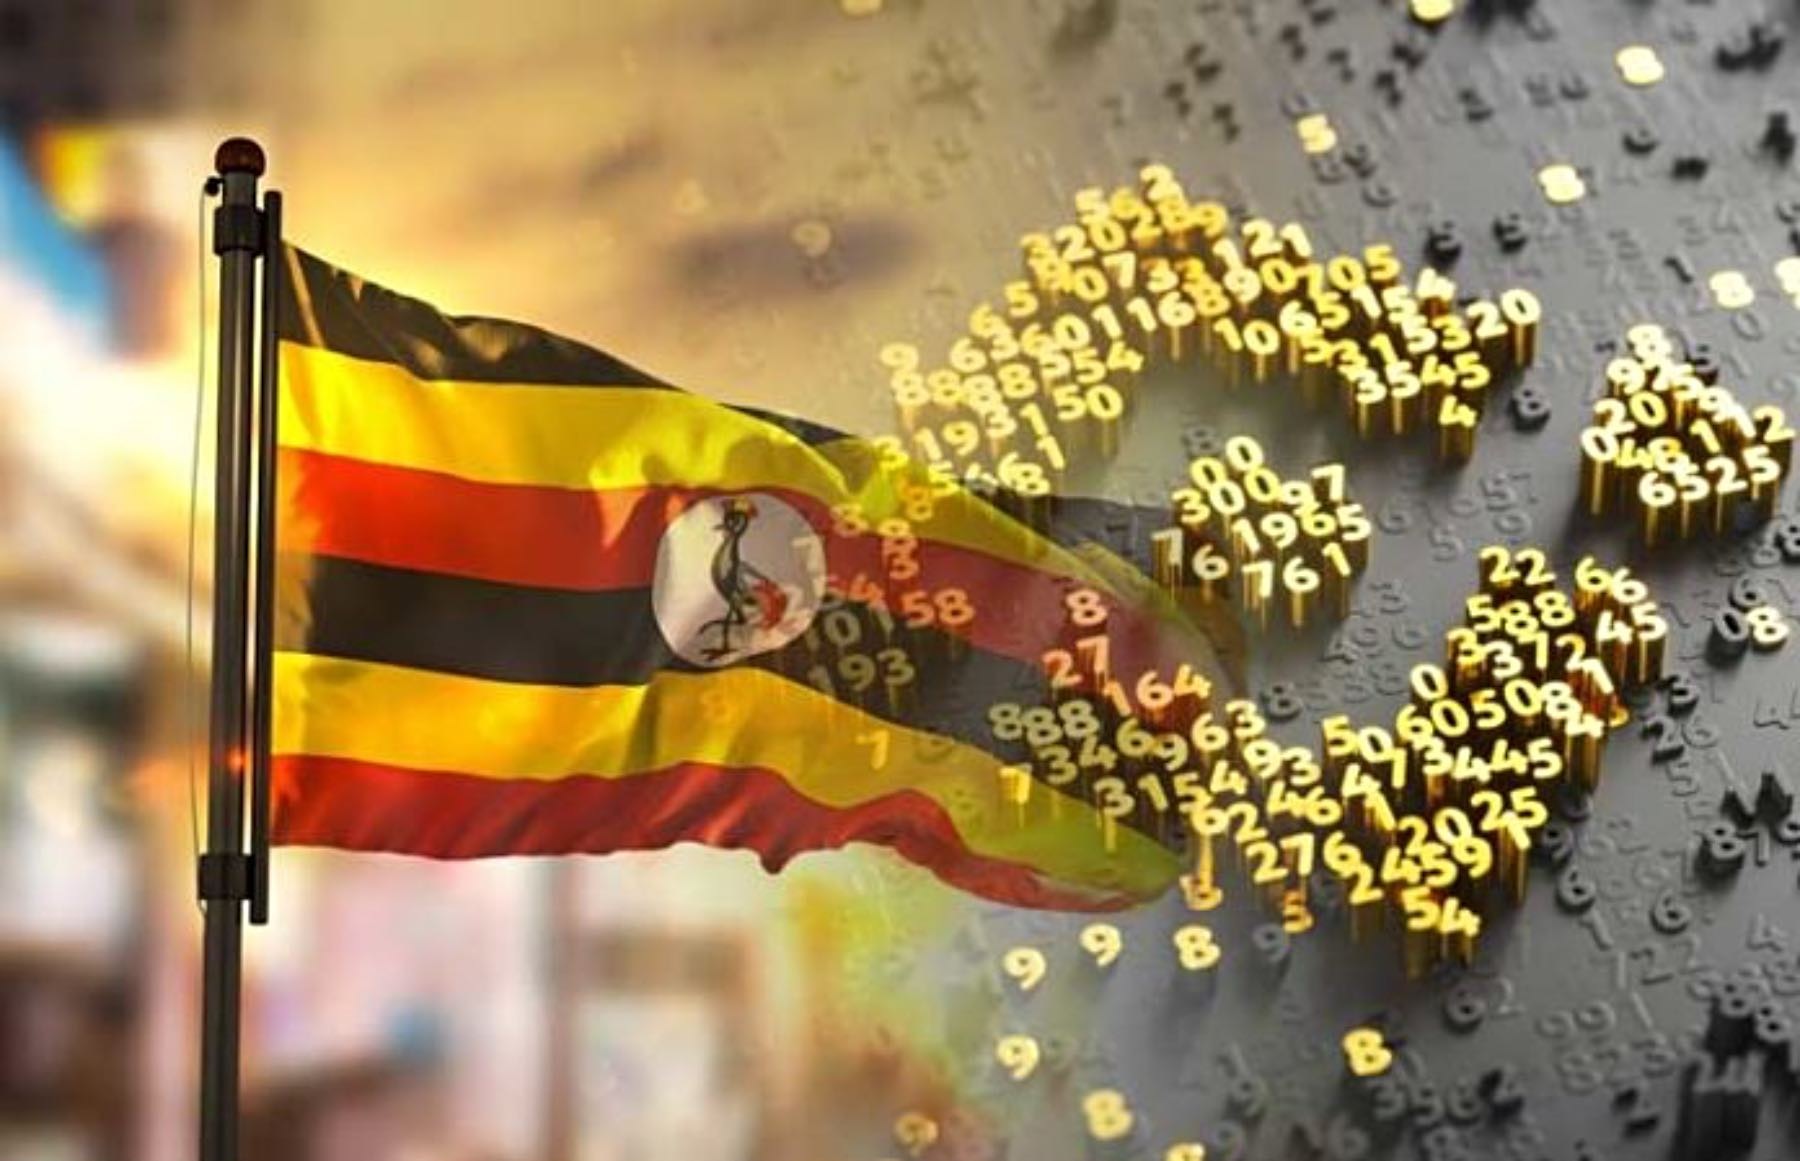 Uganda's first fiat-crypto exchange is launched by Binance